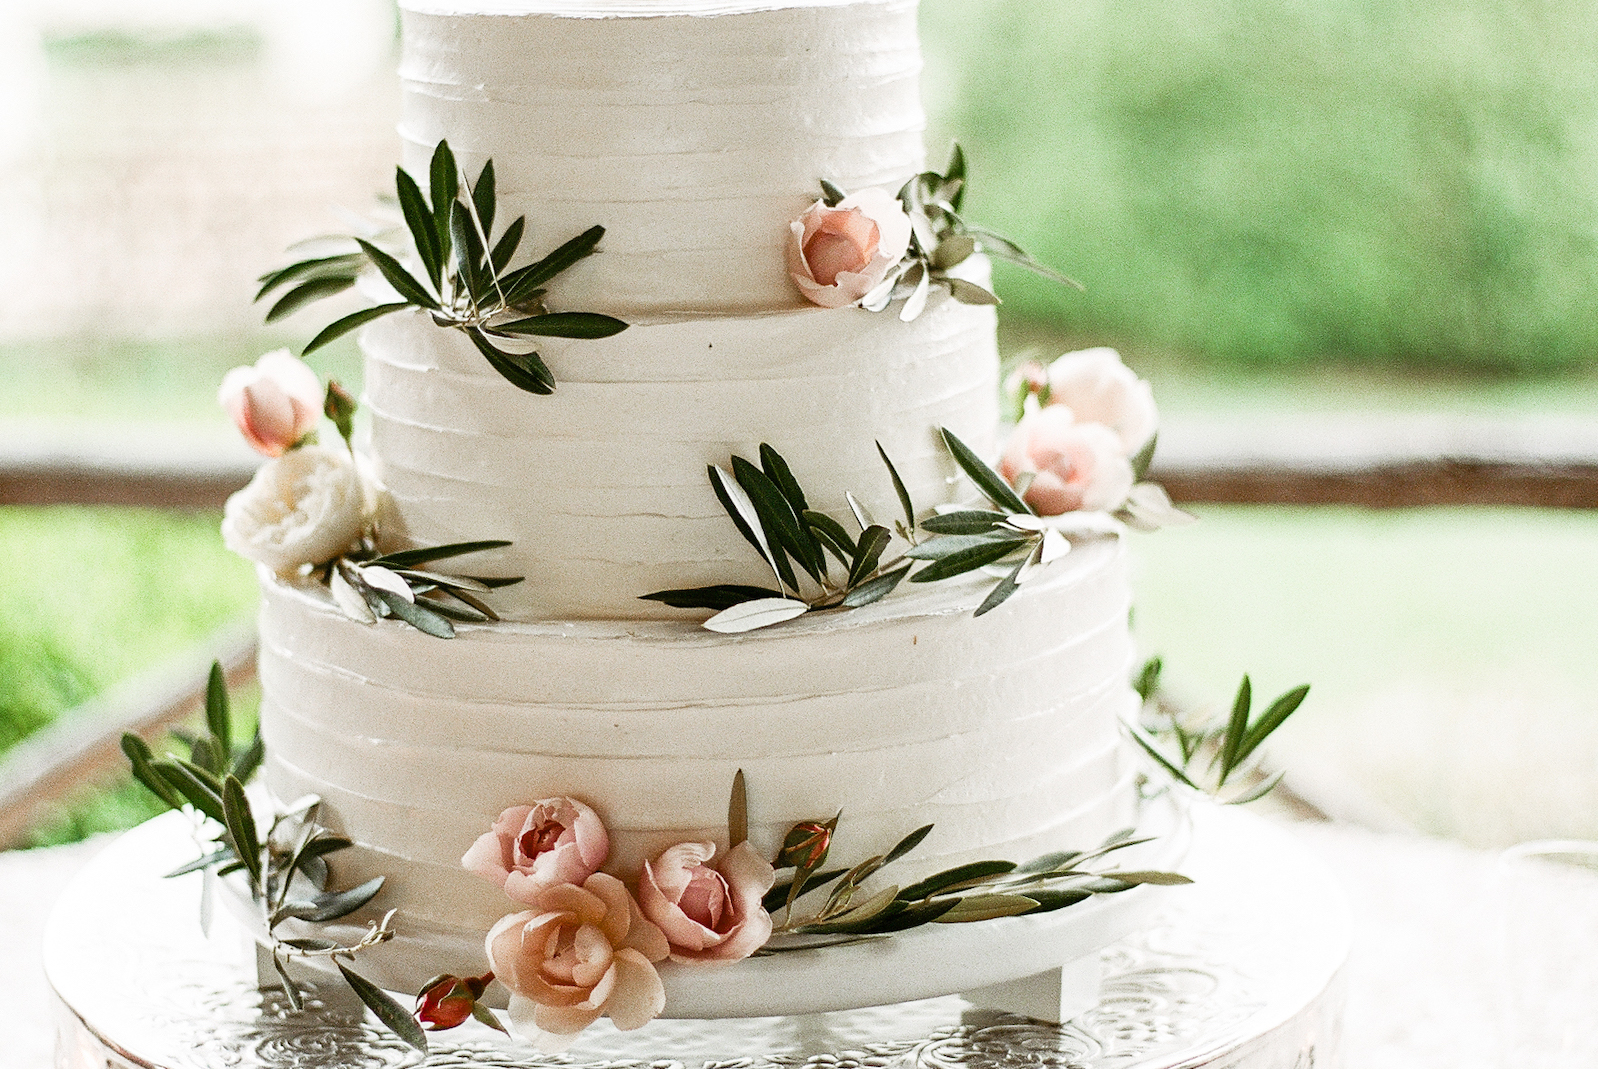 Cream-and-Flutter-Asheville-Wedding-Cake-Desserts-Sweets-24.jpg